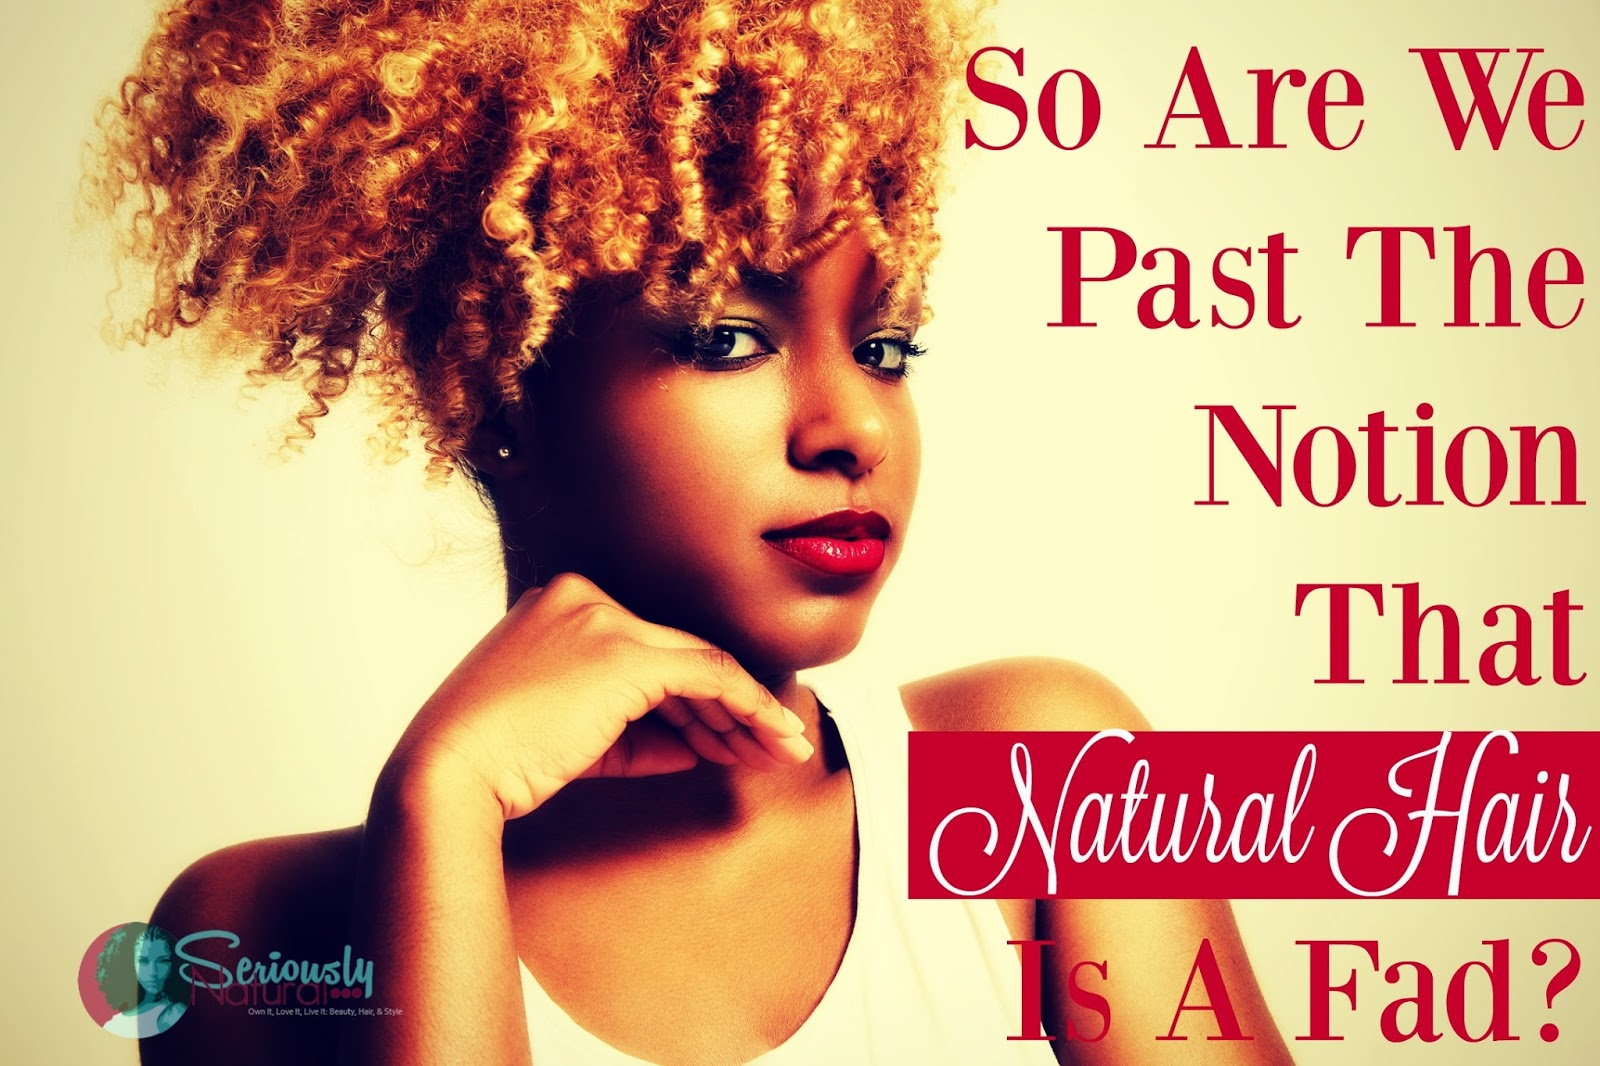 So Are We Past The Notion That Natural Hair Is A Fad?